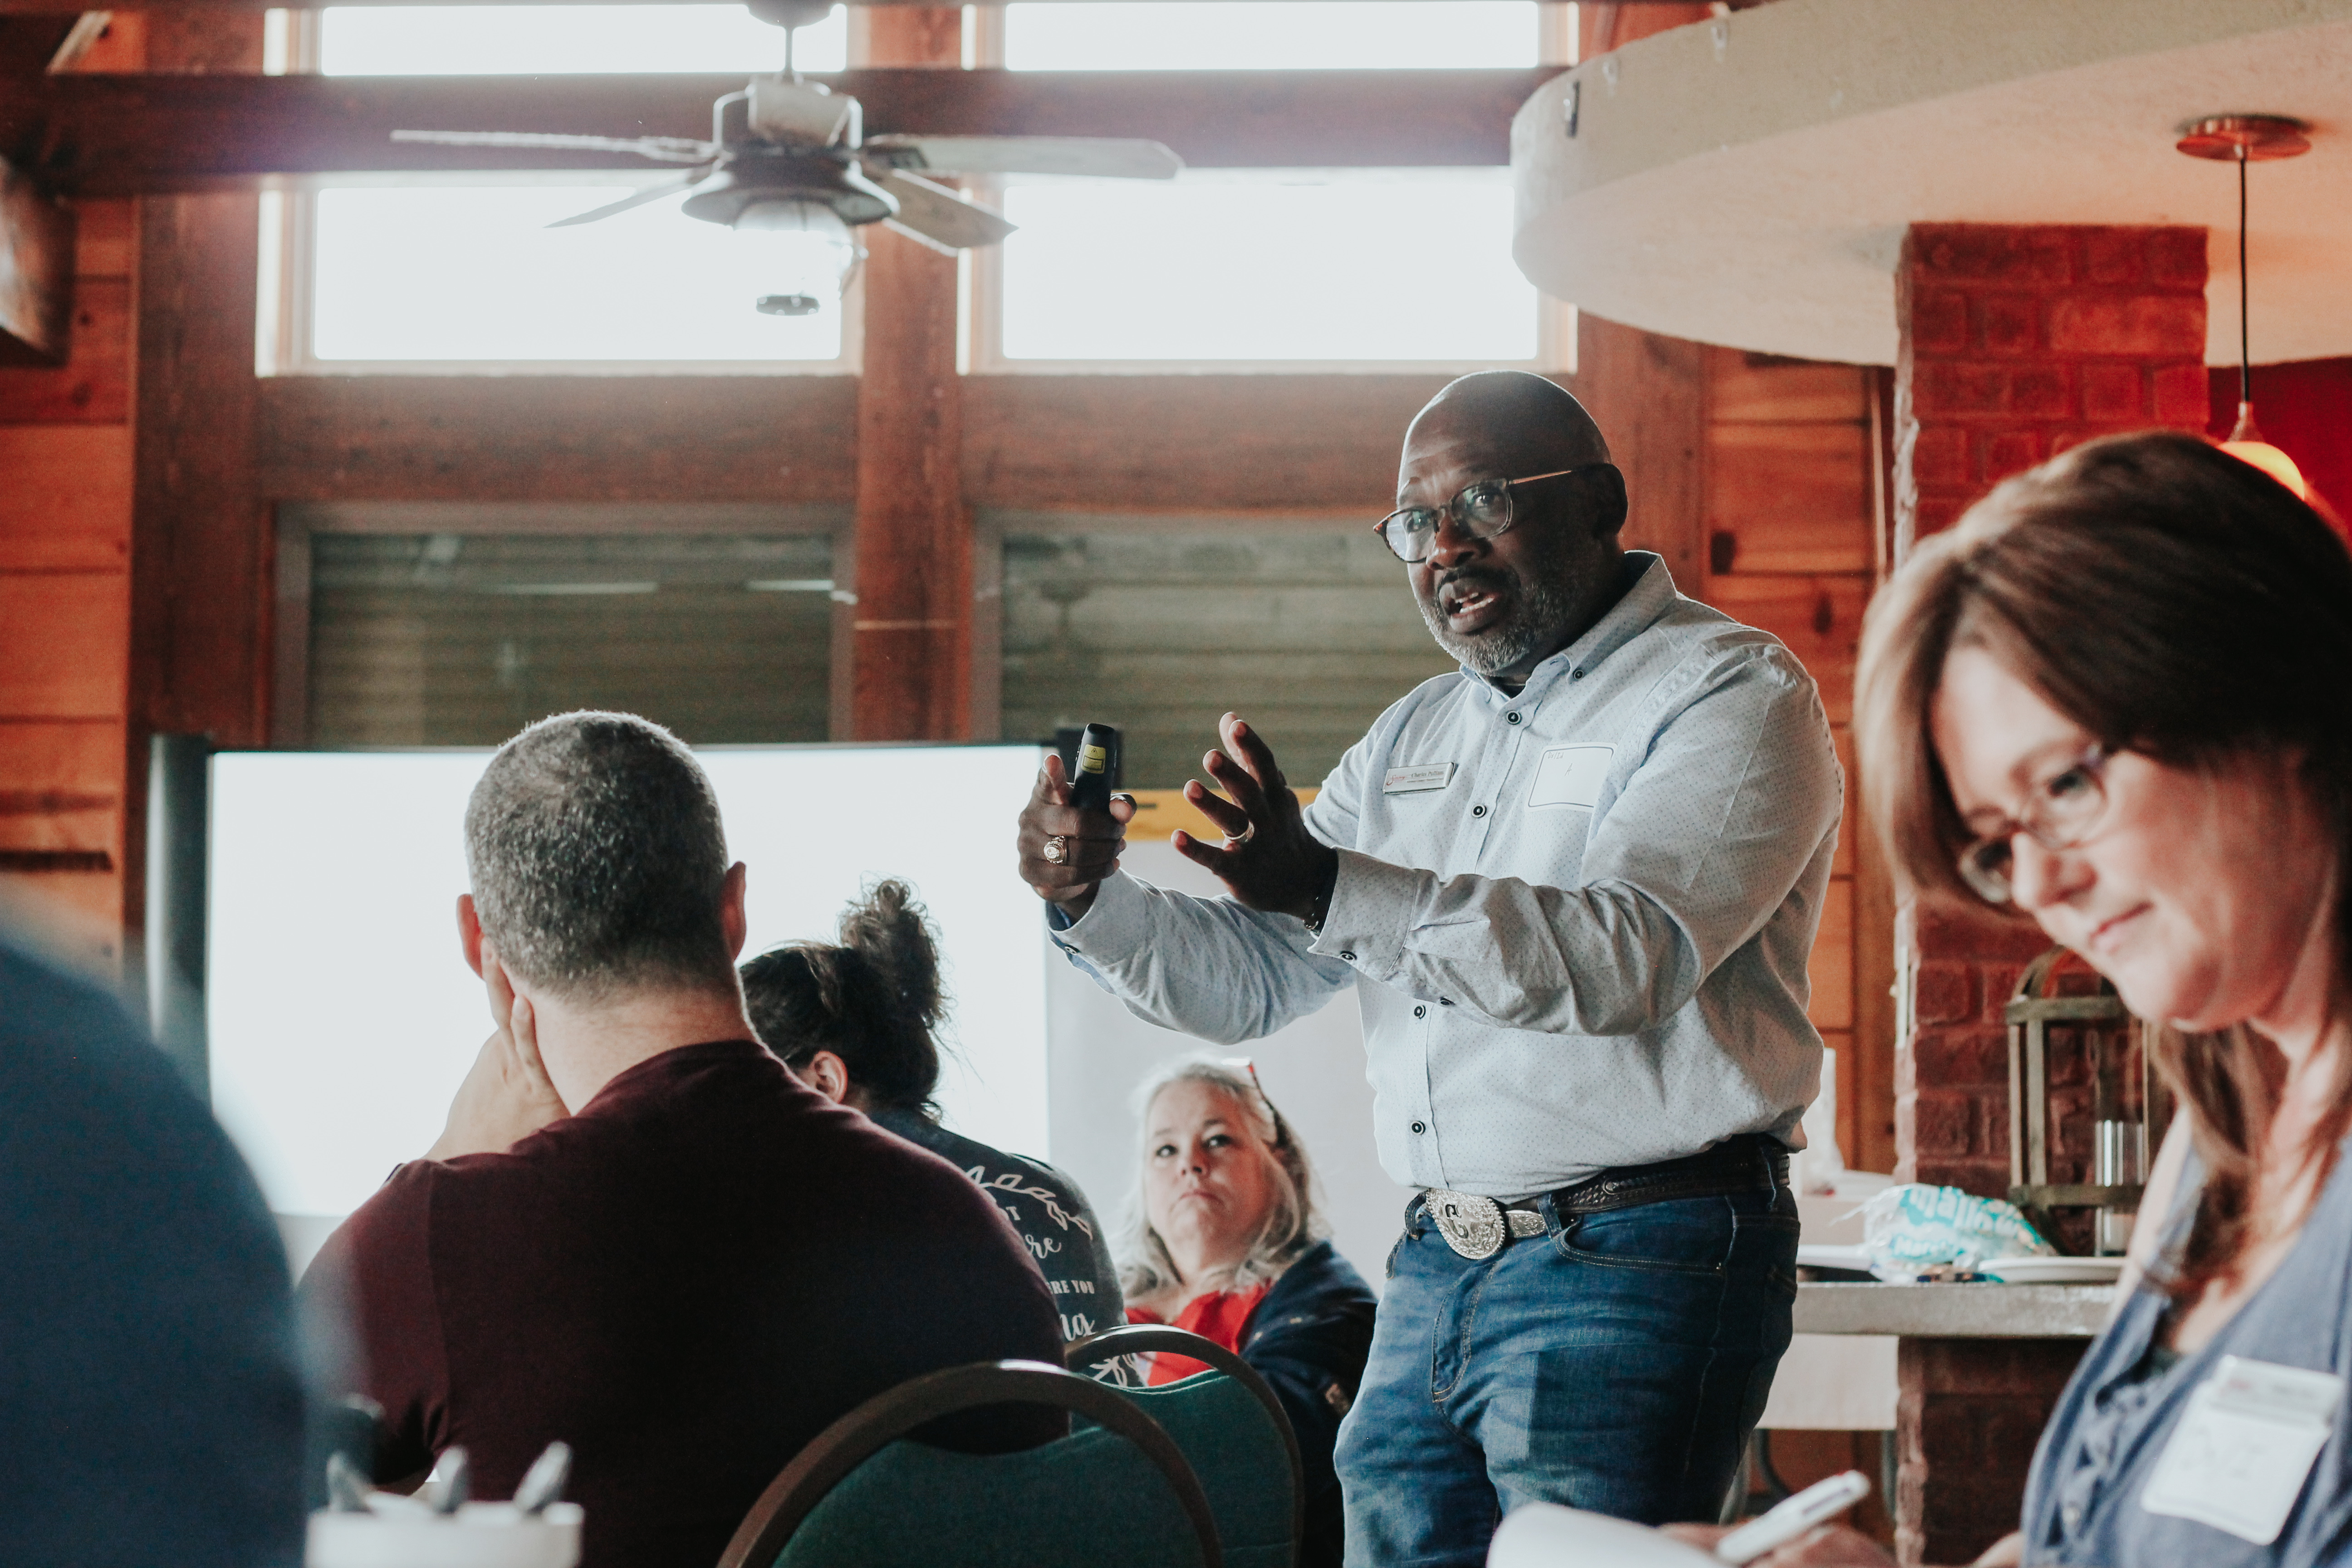 PHOTO: Charles Pulliam teaches amongst a group of people. Photo by Kristy Mapp.